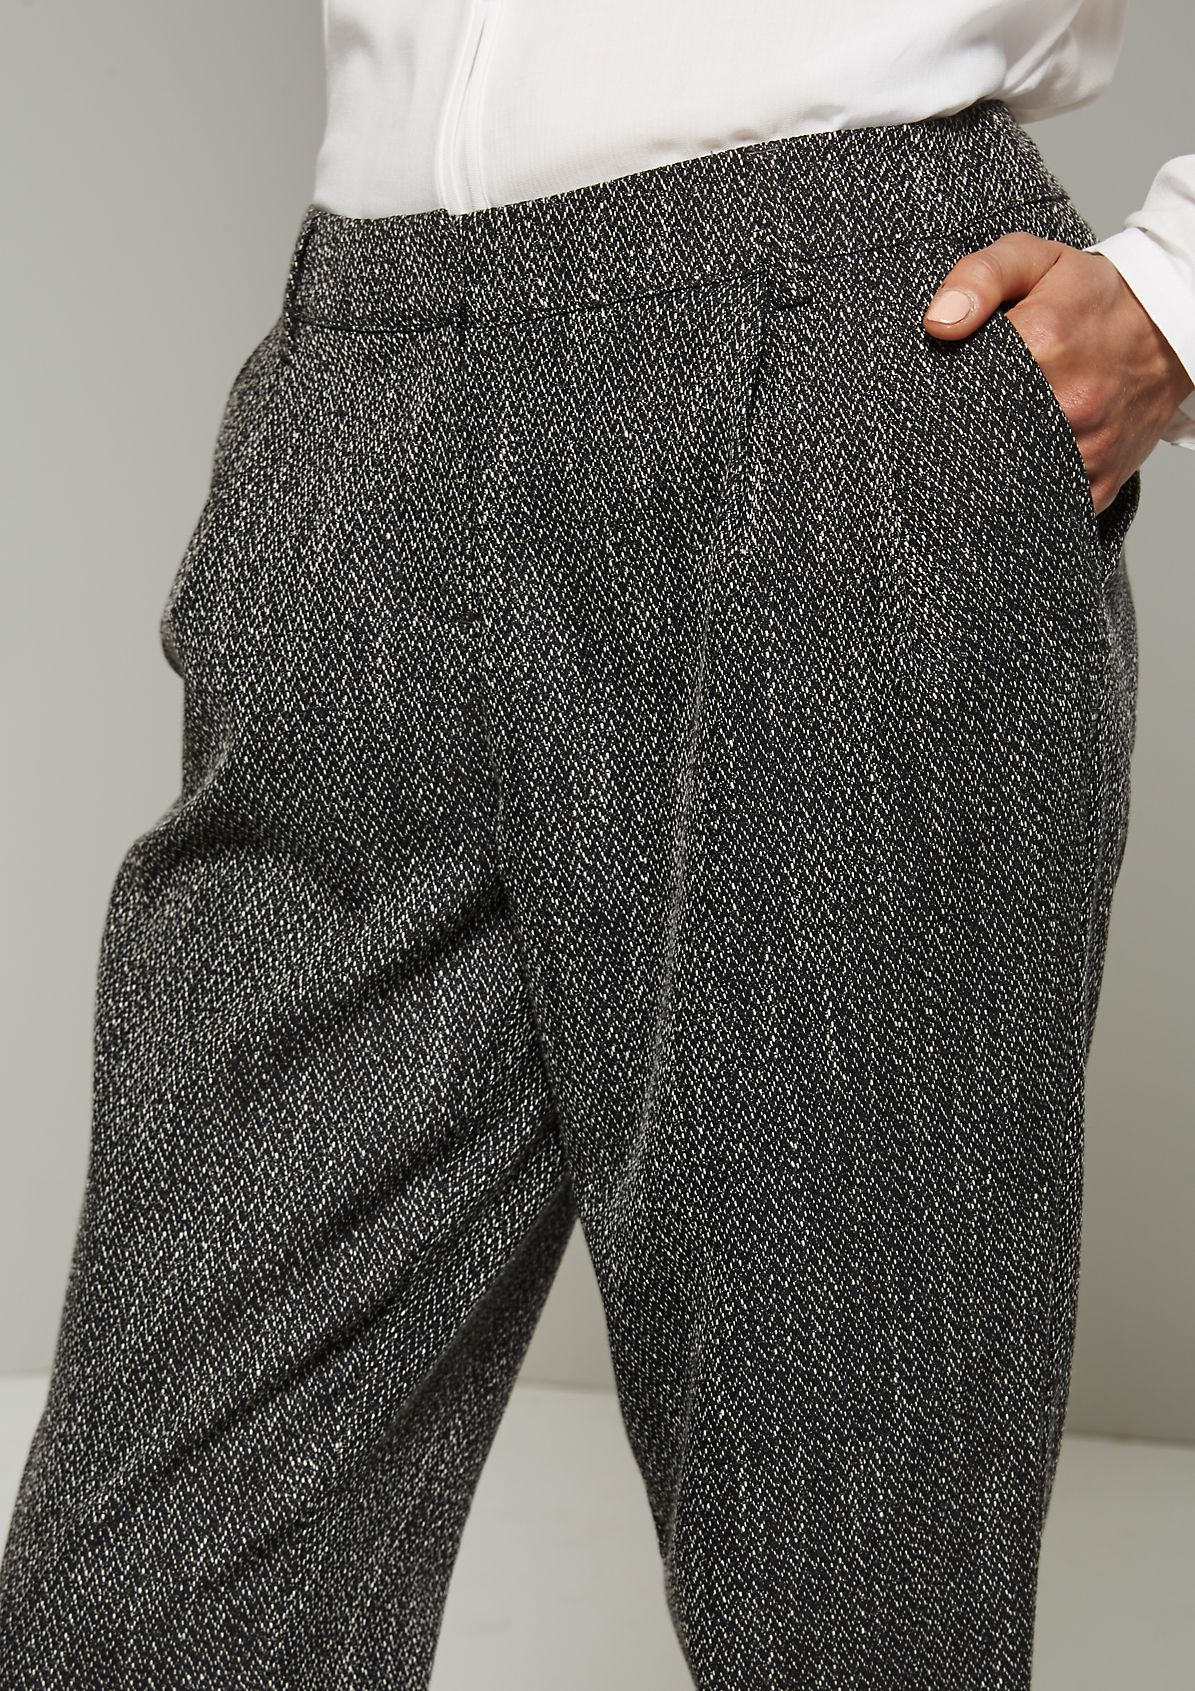 Feminine trousers with a classic herringbone pattern from s.Oliver